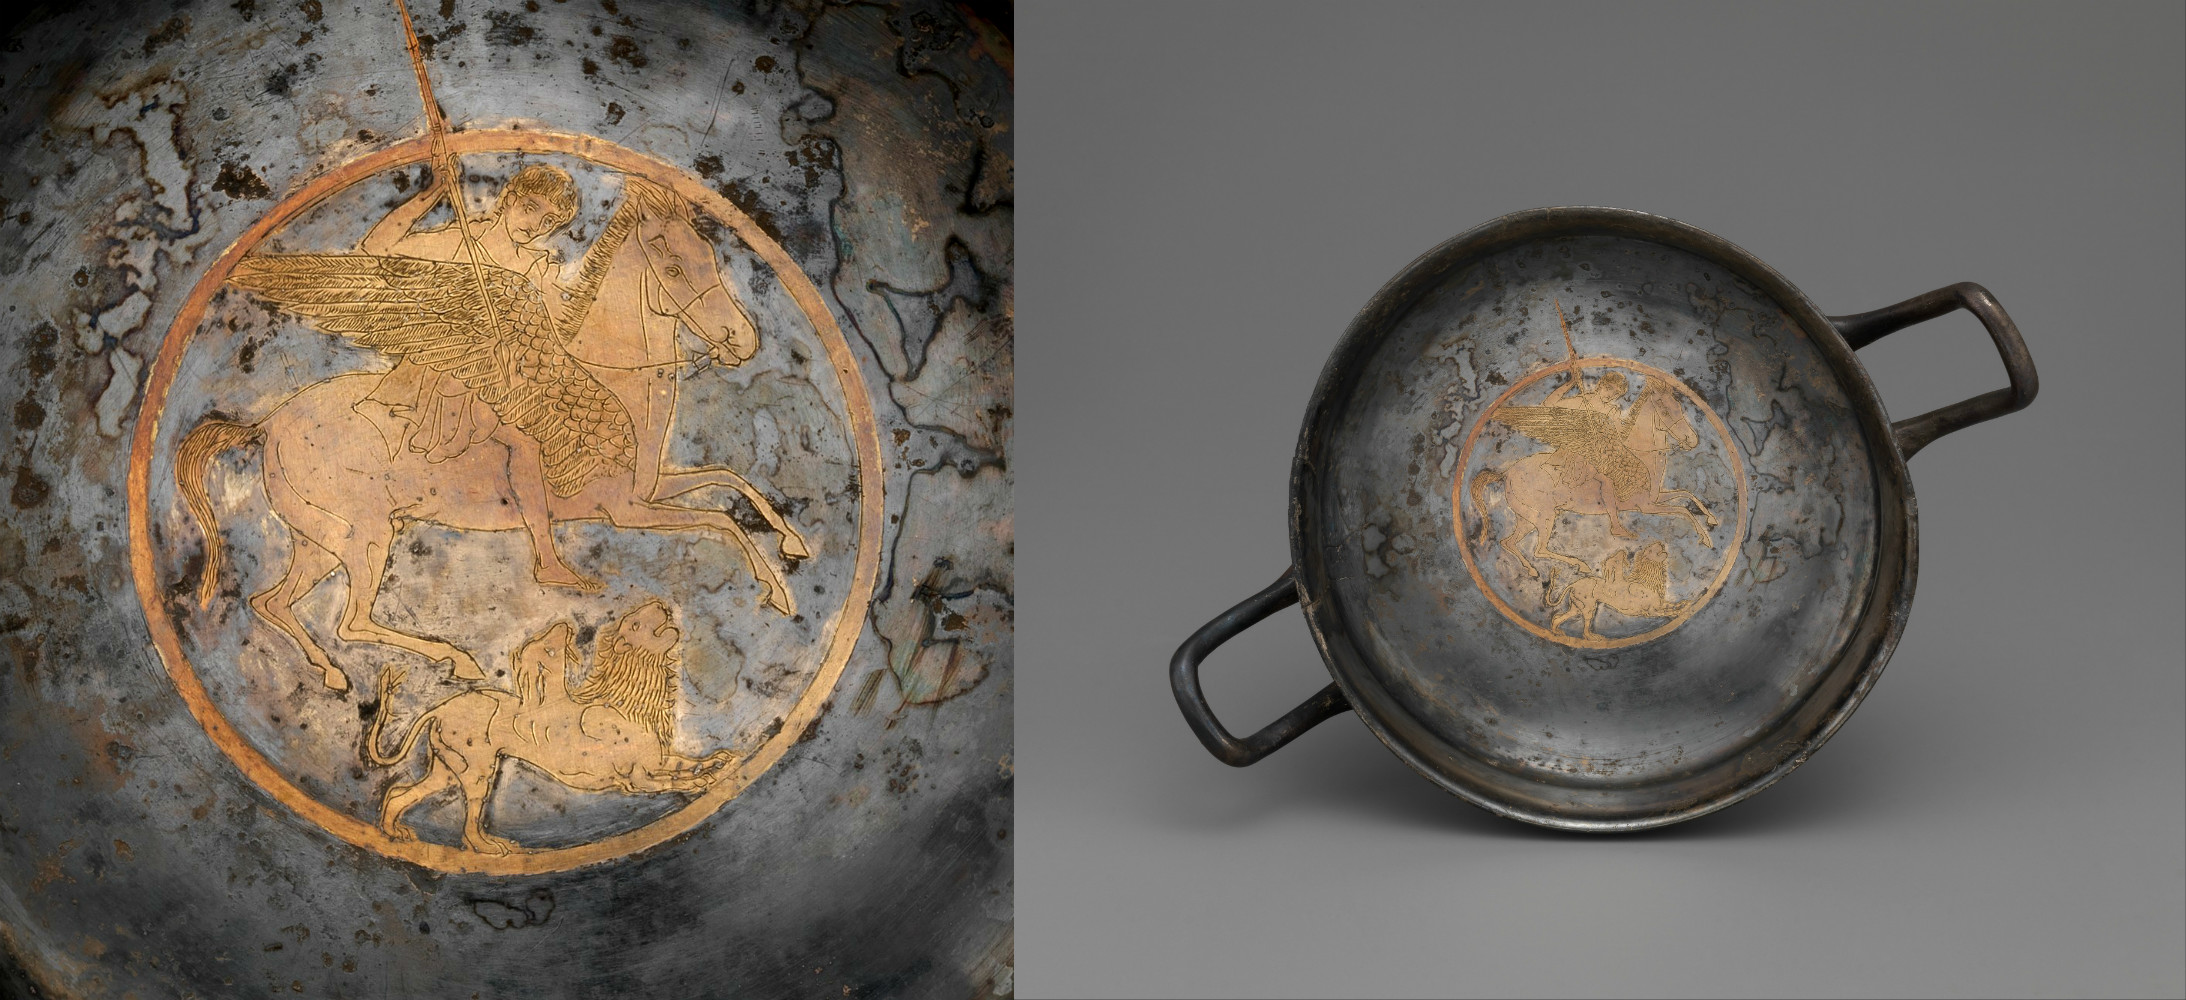 Gilt silver kylix with Bellerophon riding Pegasus and attacking the Chimaera, late 5th century BC, Greek